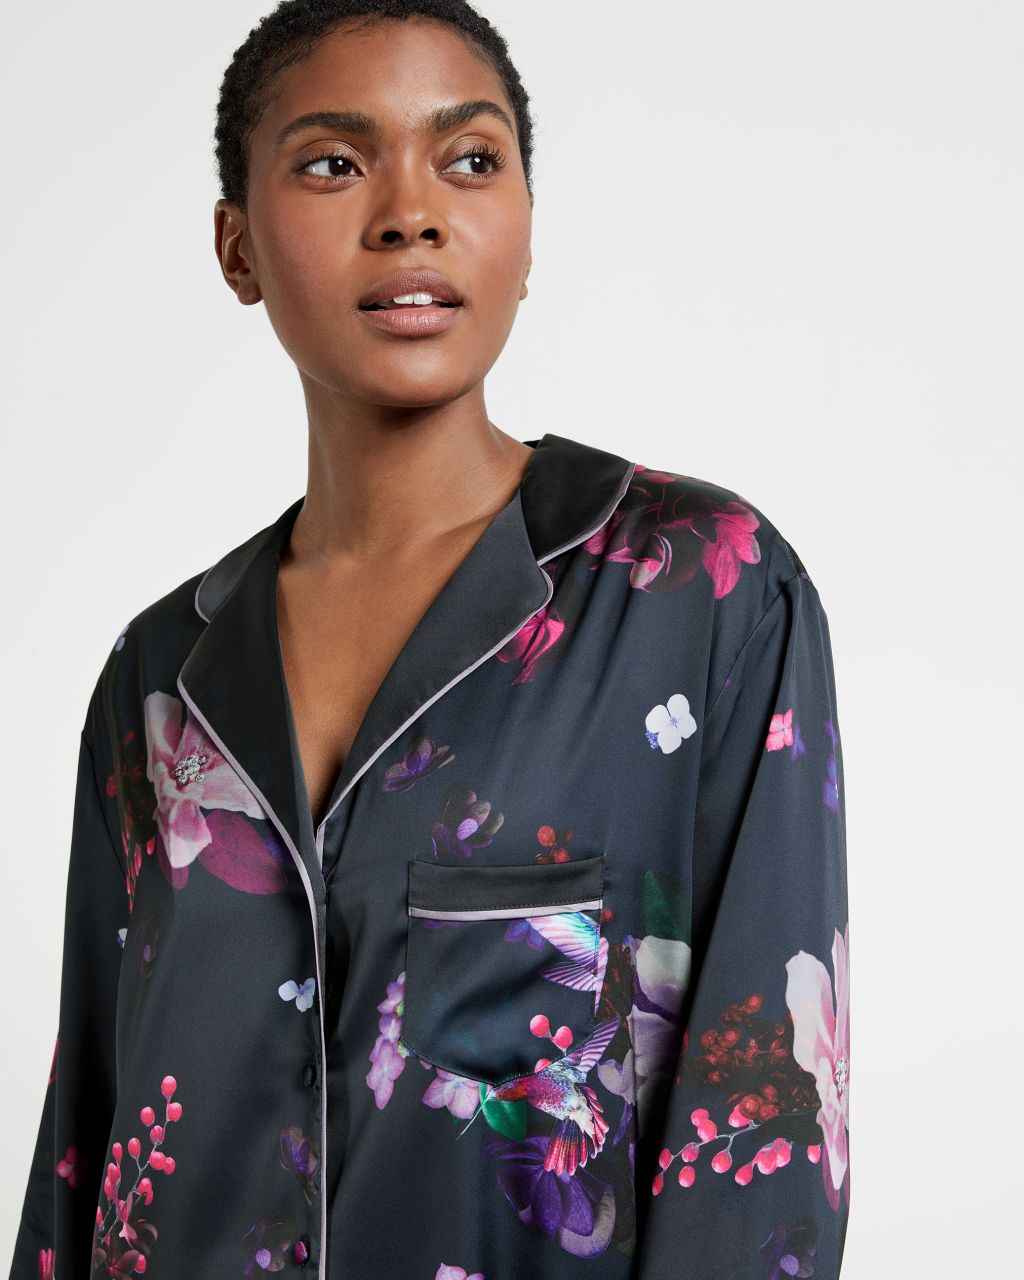 TED BAKER Pomegranate Satin Shirt | TED BAKER SALE